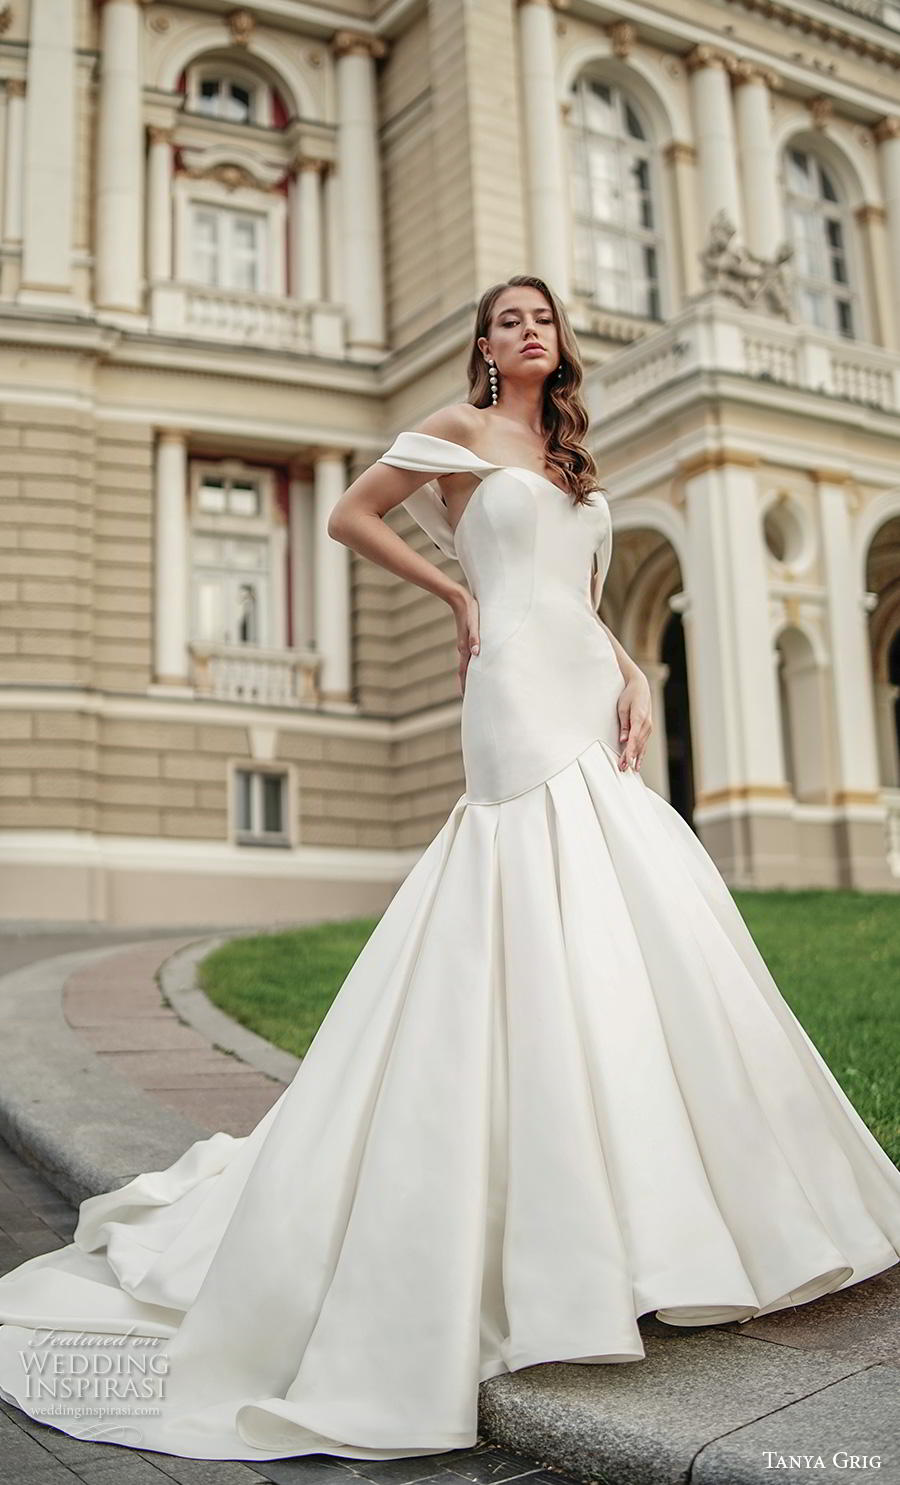 tanya grig 2020 bridal off the shoulder sweetheart neckline simple clean minimalist elegant mermaid wedding dress mid back chapel train (11) mv